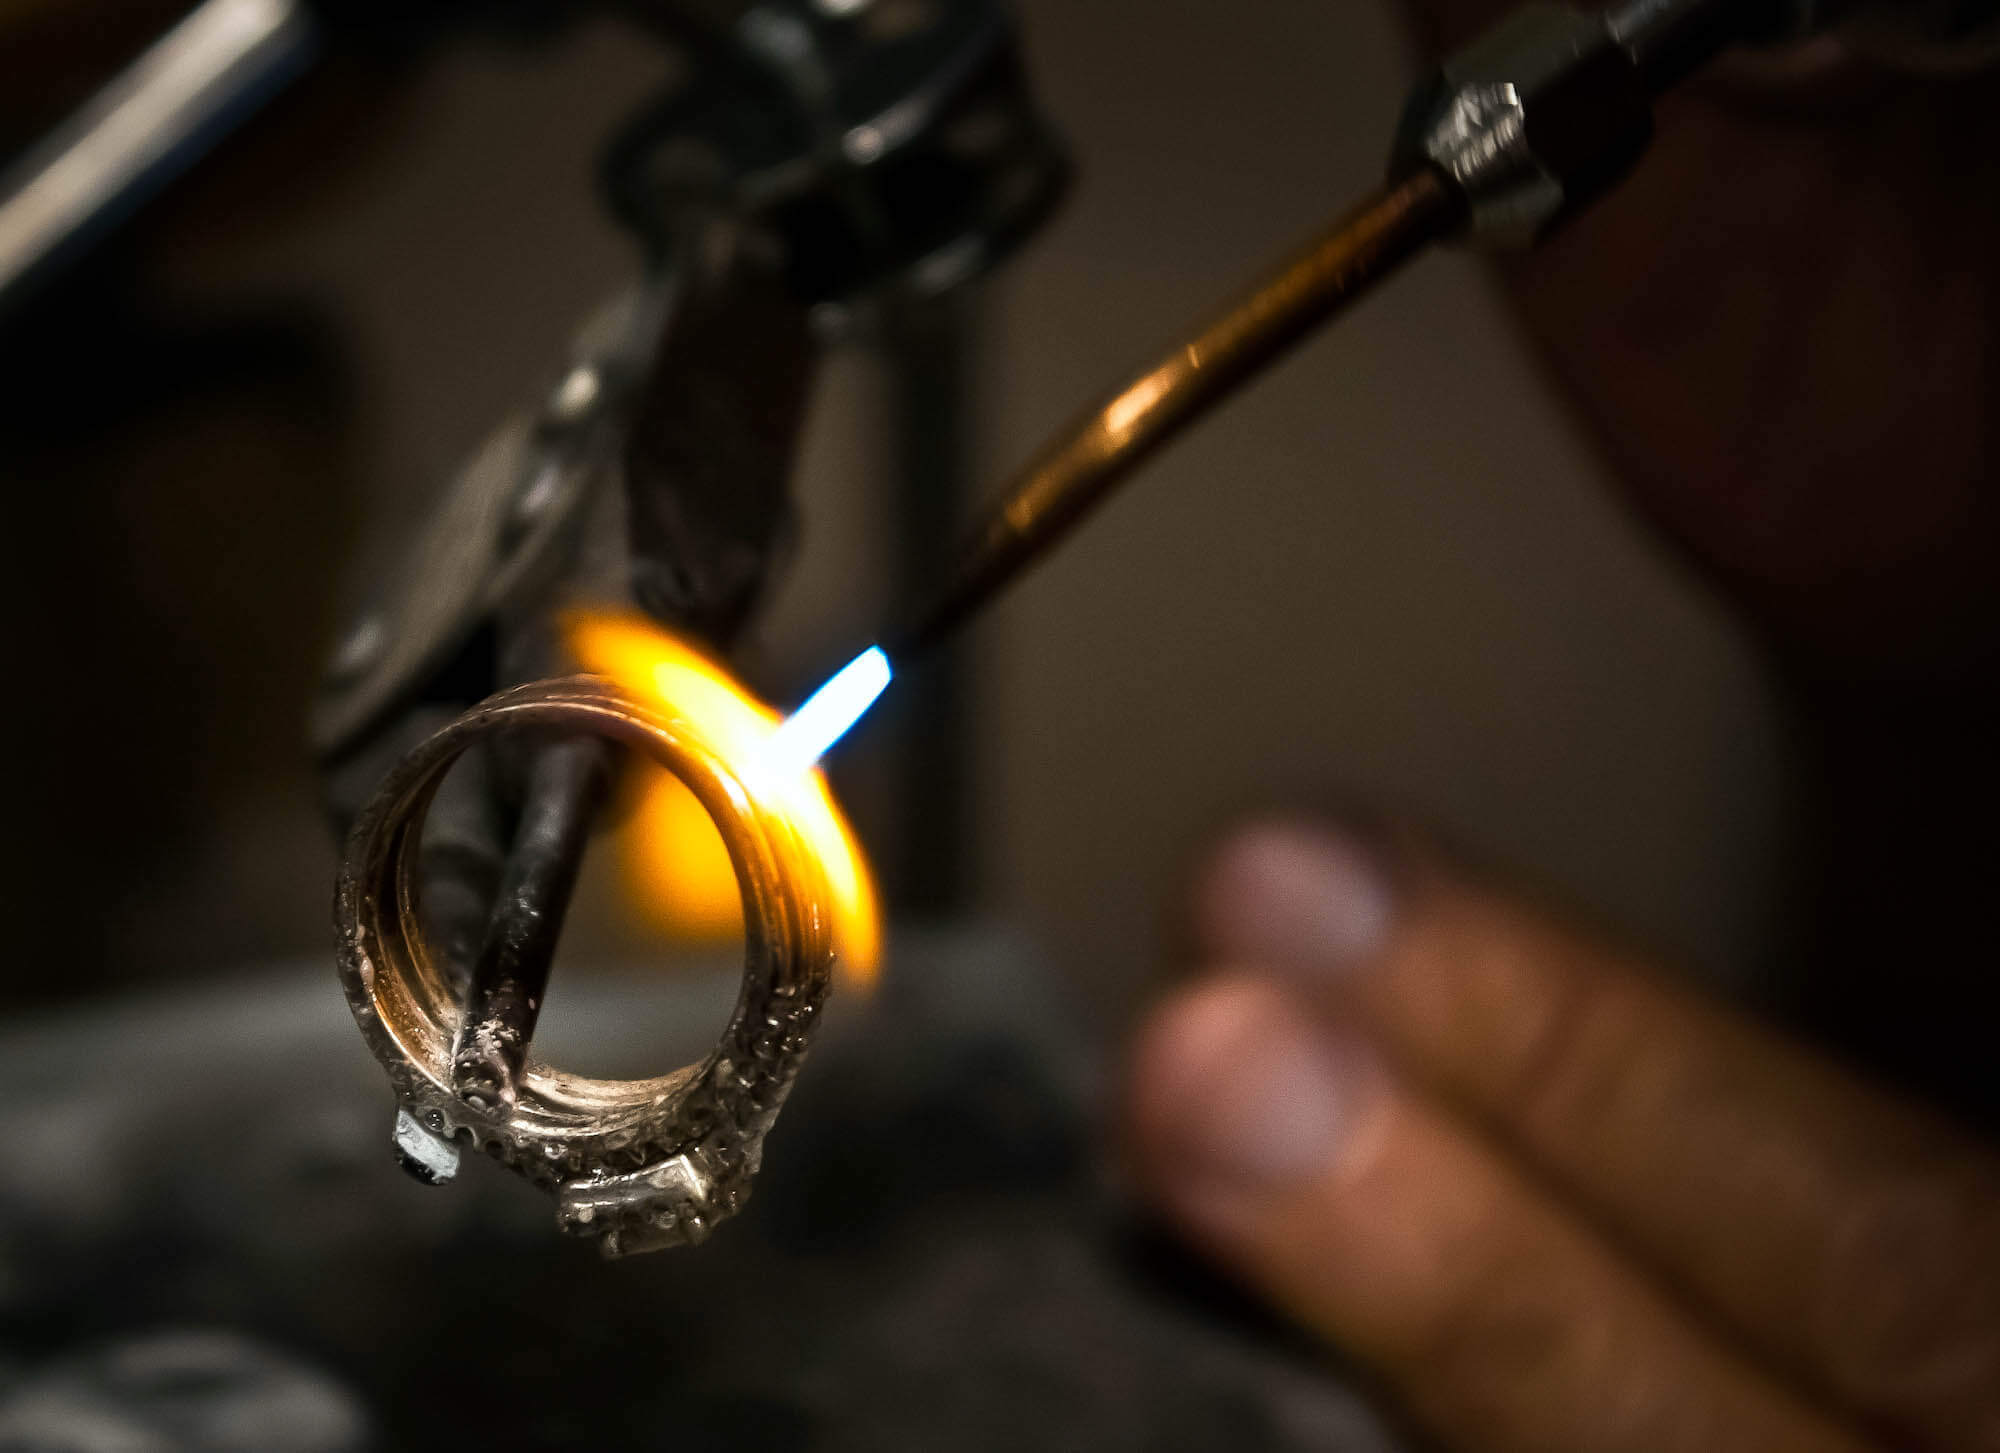 Close up of a man from the jewelry repair shop applying fire to a wedding band.